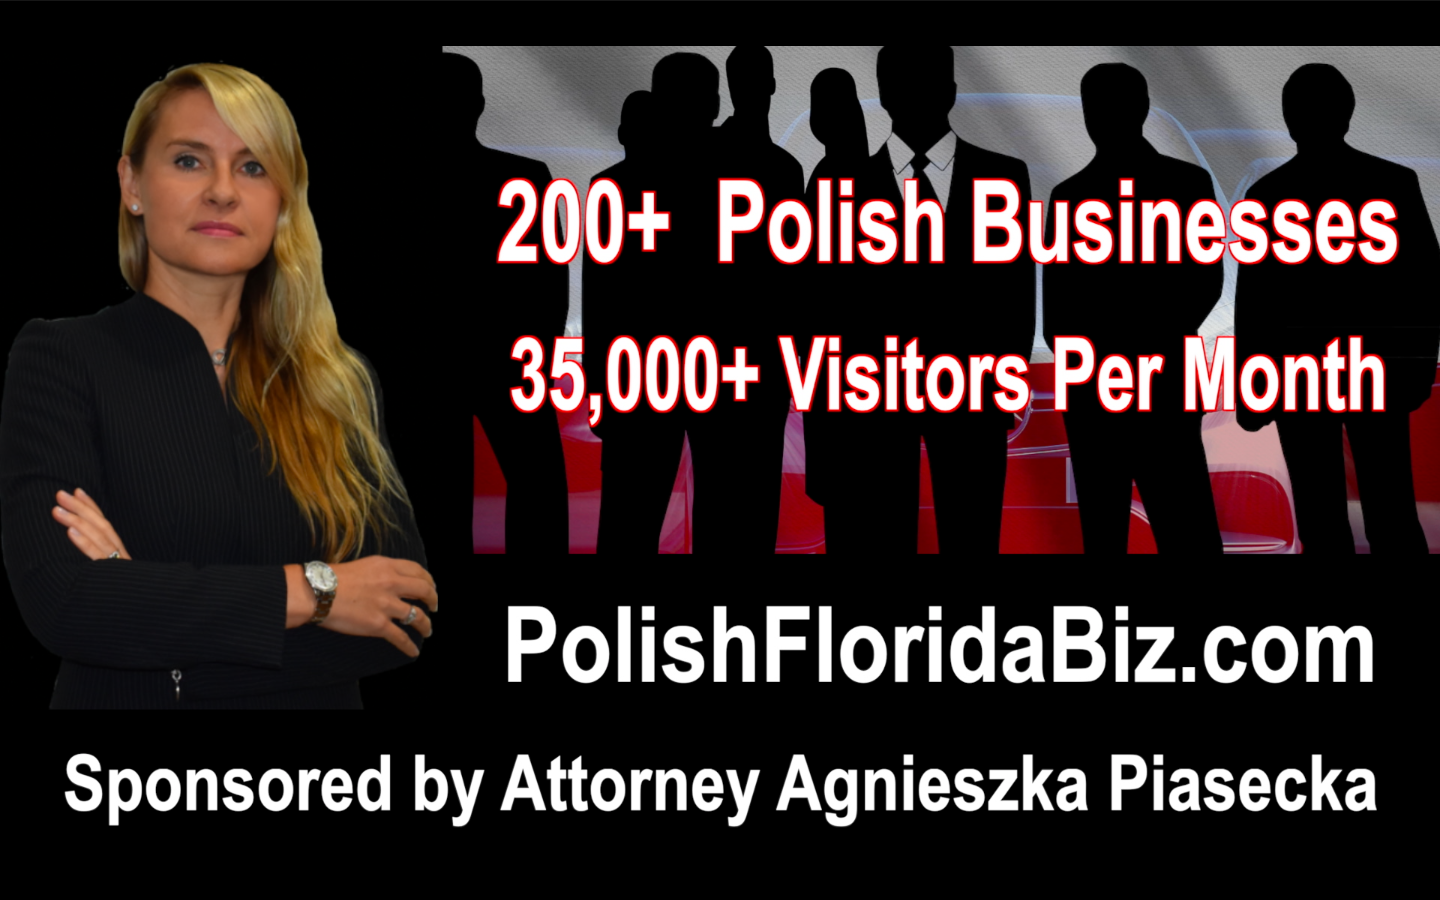 BEZPŁATNE polskie katalogi firm sponsorowane przez adwokata Agnieszkę Piasecką. FREE Polish Business Directories Sponsored by Attorney Agnieszka Aga Piasecka.